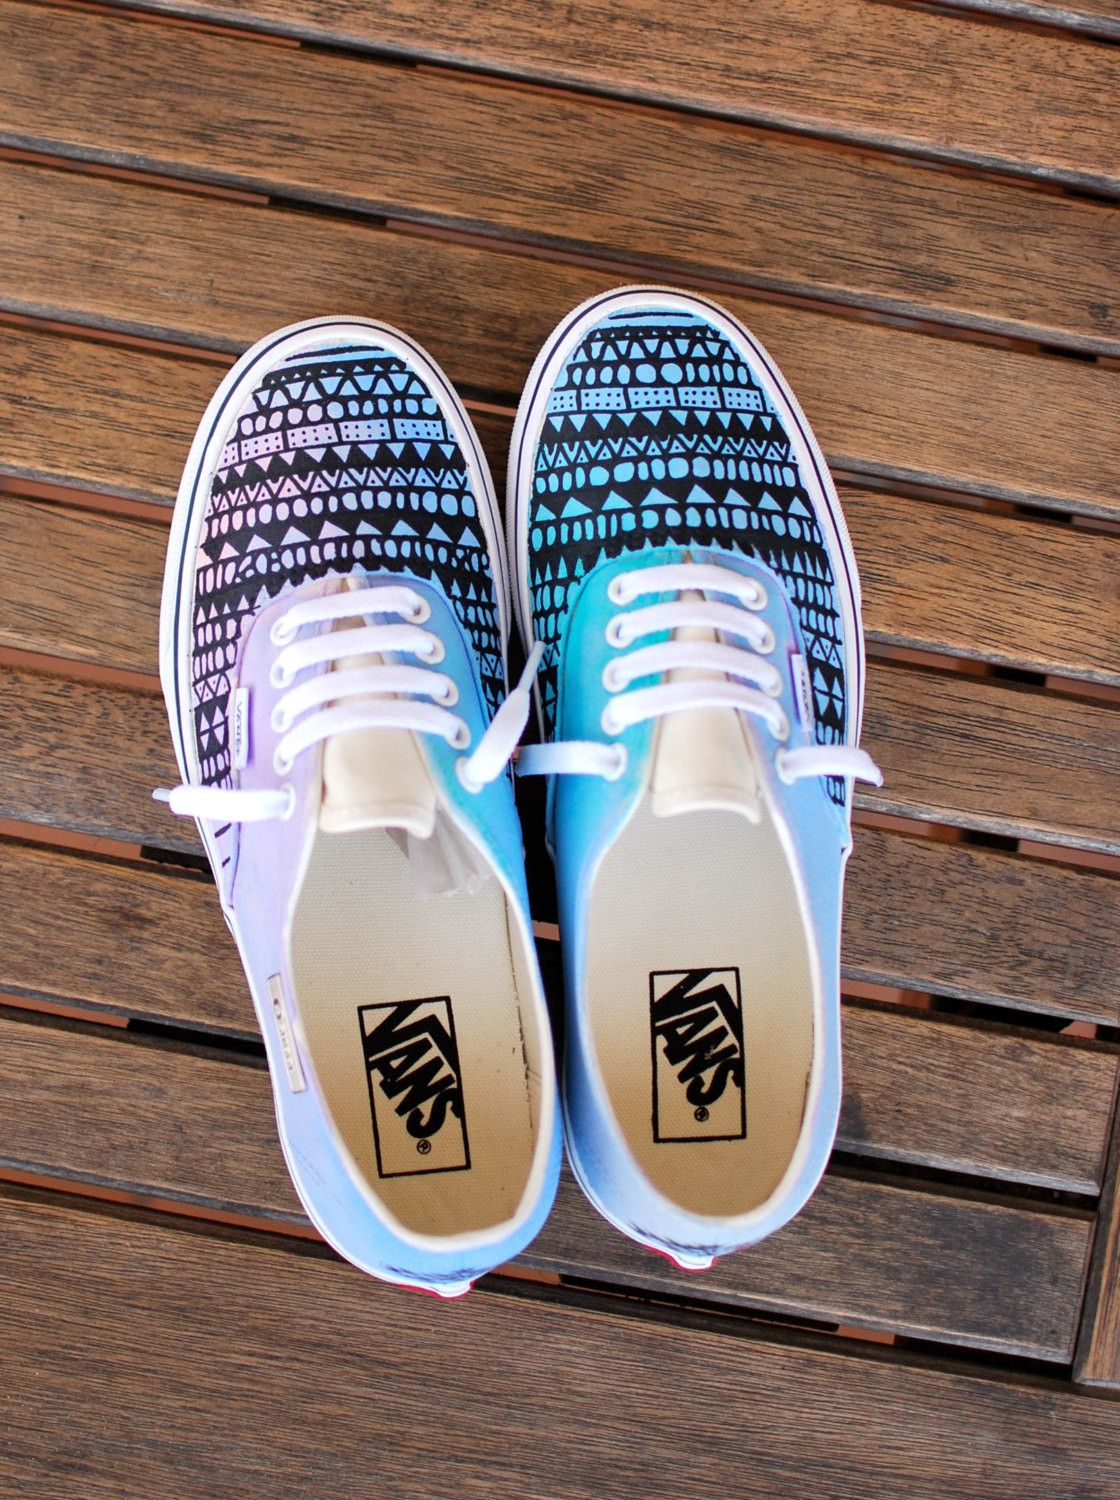 Drawn vans cute #1